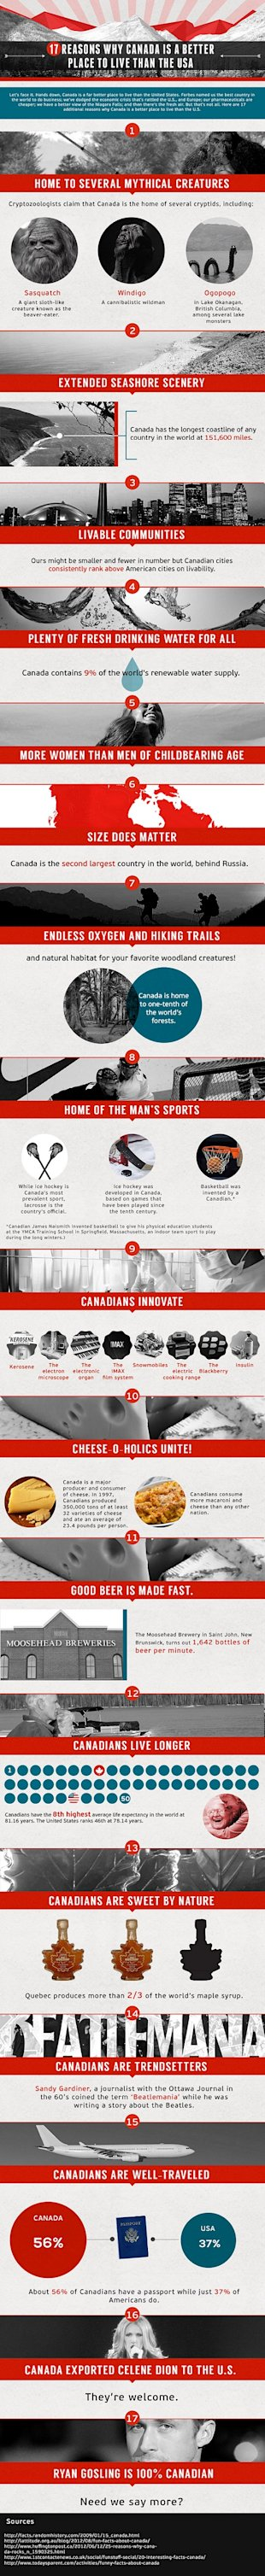 17 Reasons Why Canada is a Better Place to Live than the USA [Infographic] image canada vs us infographic1